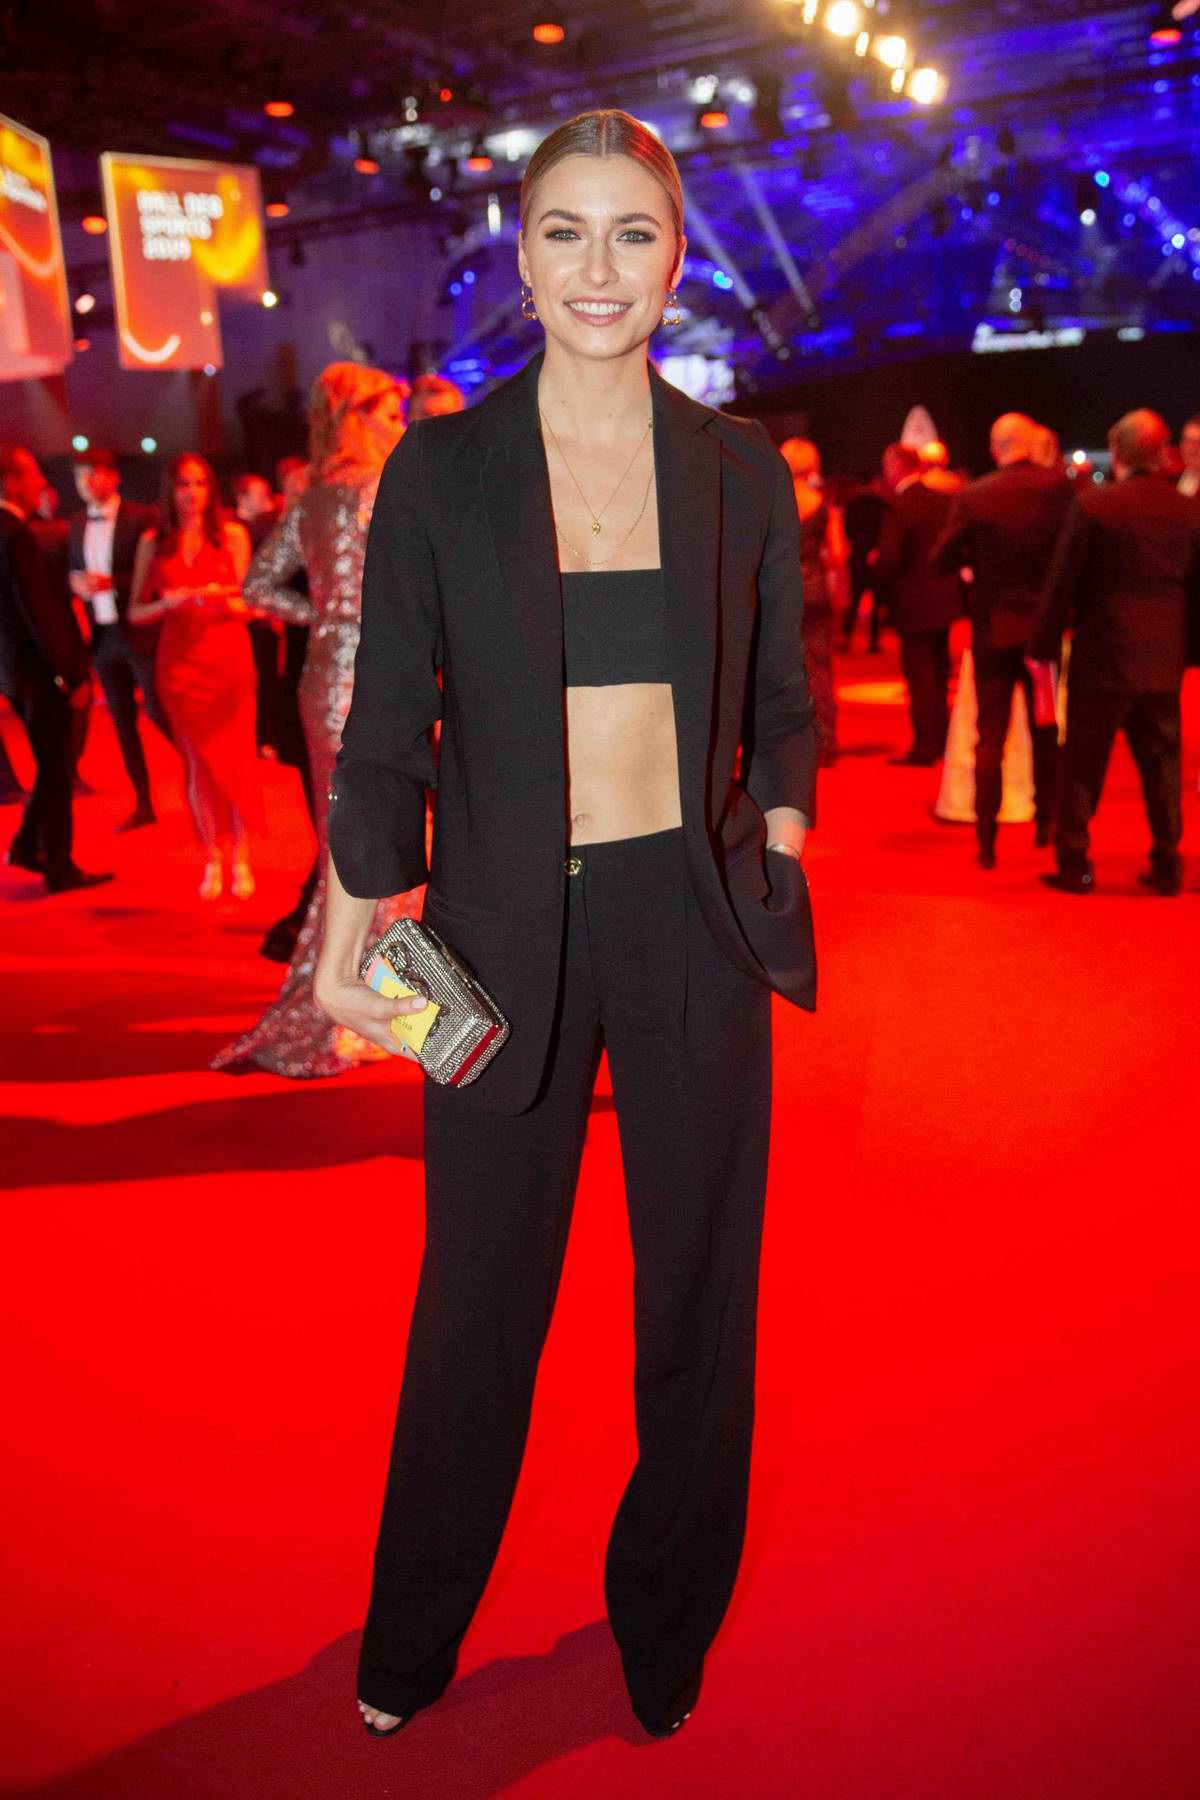 Lena Gercke Attends The Ball Des Sports In Wiesbaden